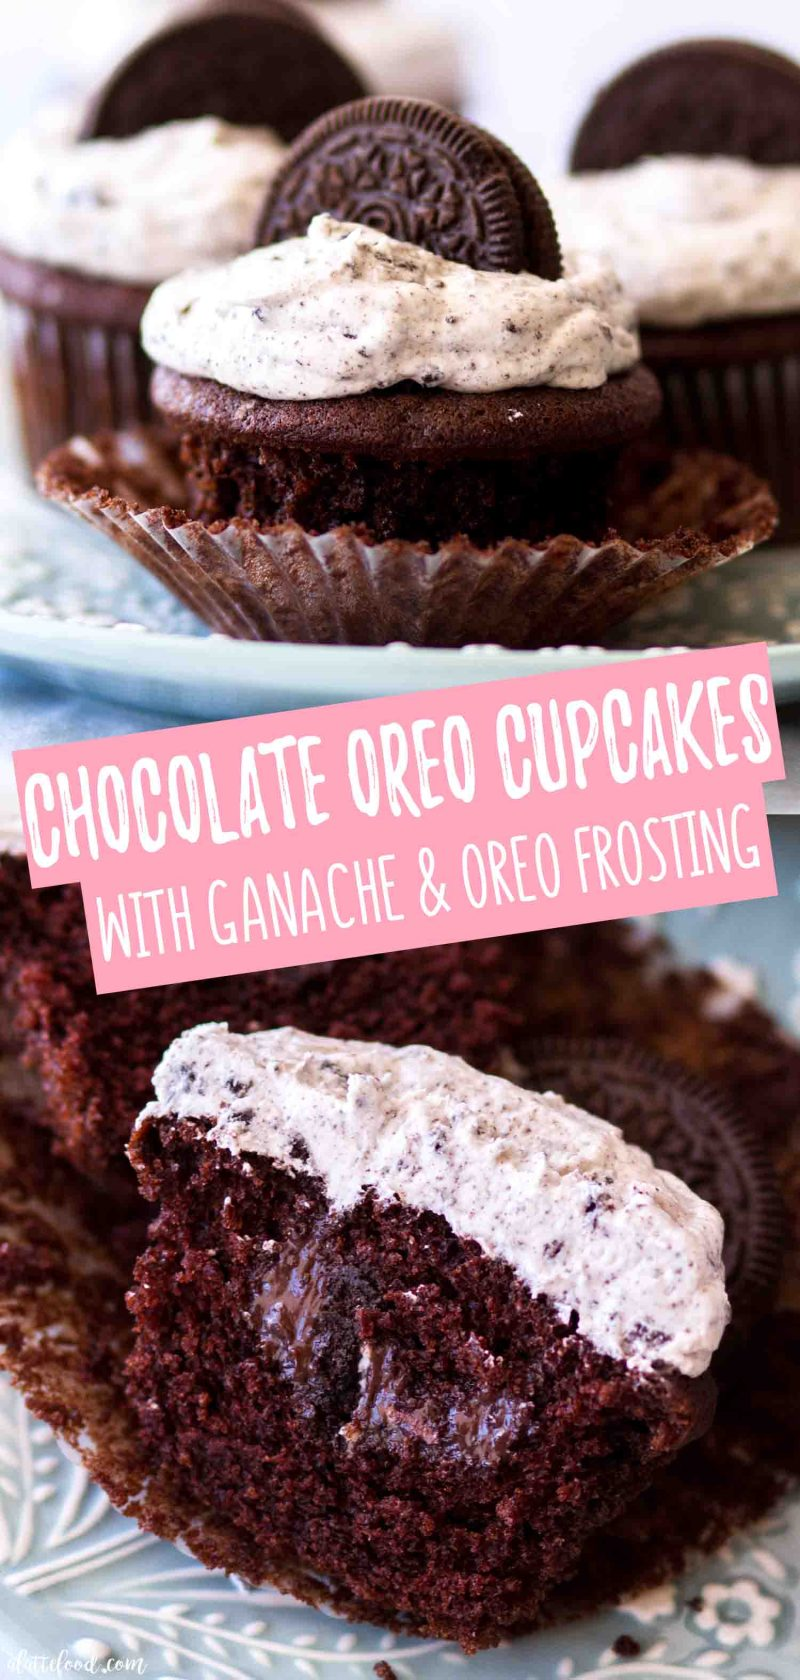 Moist chocolate oreo cupcakes with homemade ganache and cookies and cream frosting